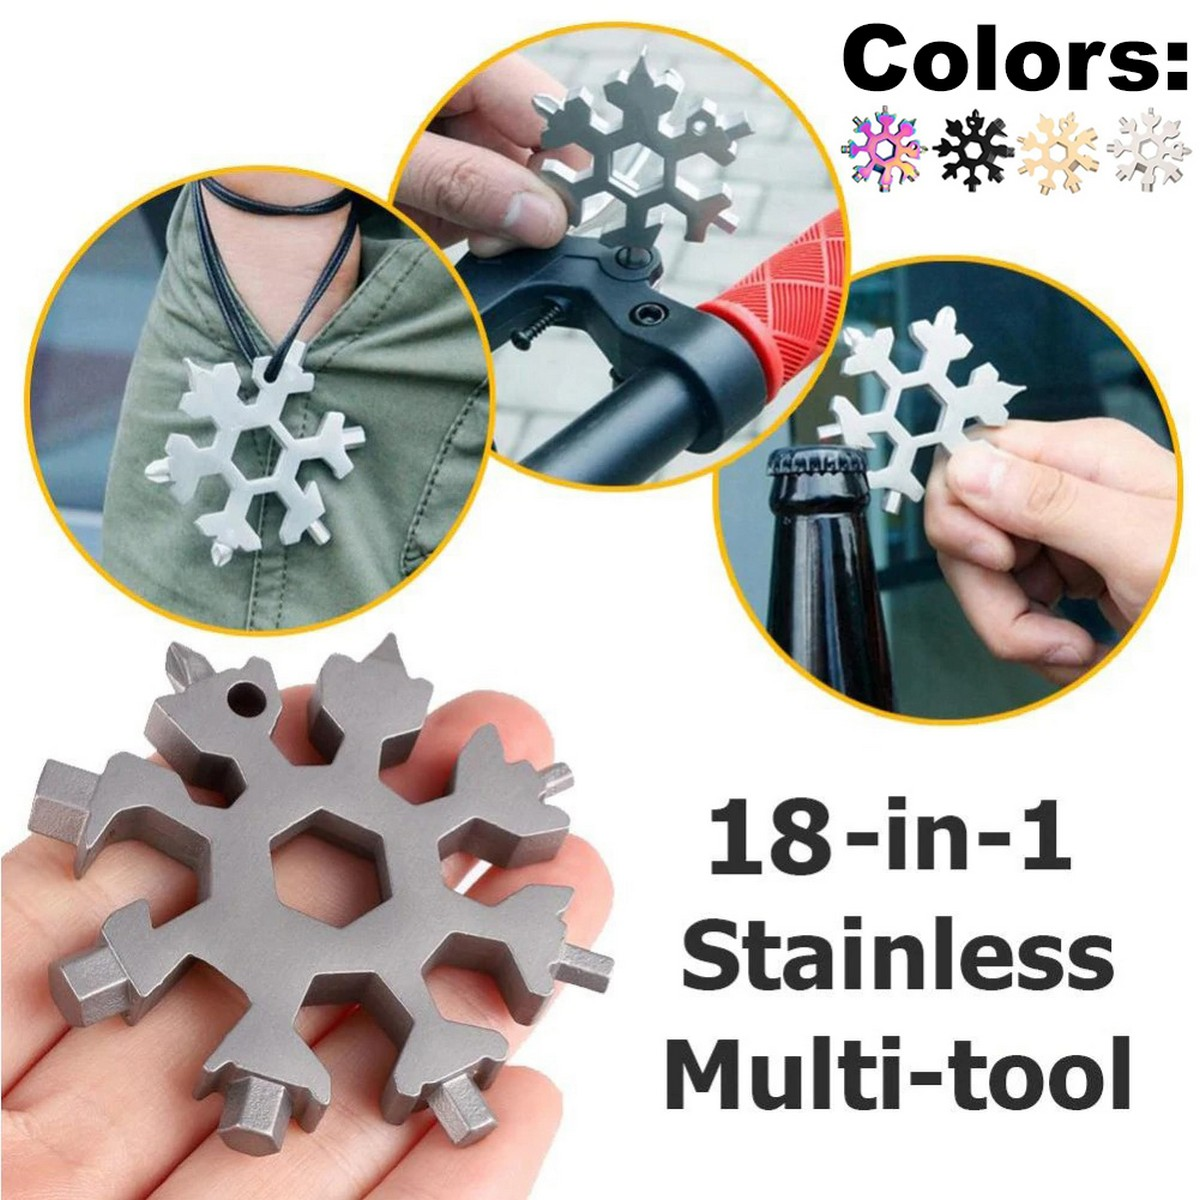 18 In 1 Snowflake Wrench Multi Tool Spanner Hex Multifunction Stainless Steel Survival Tools Screwdriver Bottle Opener Allen Key Keyring Pocket Portable EDC Keychain Compact Universal For Repairing Gadget Household Equipment Travel Hiking Cycling